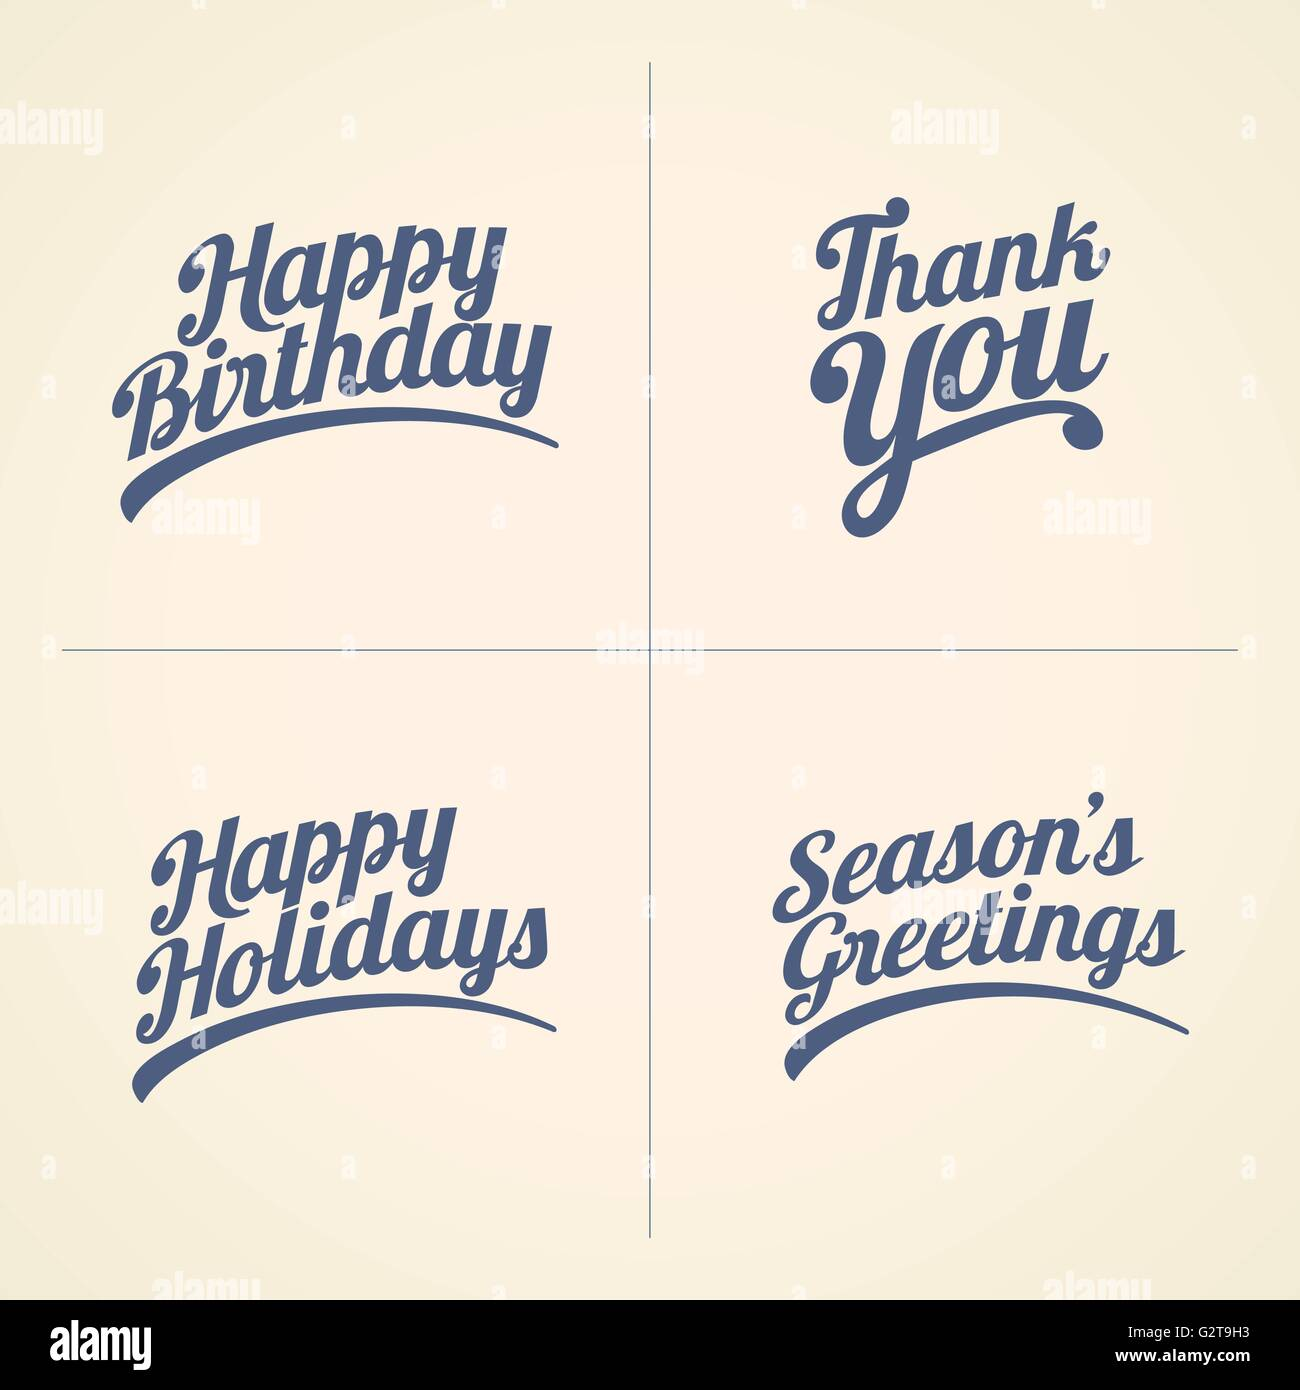 Vector happy birthday thank you happy holidays and seasons stock vector happy birthday thank you happy holidays and seasons greeting text set good wishes text collection m4hsunfo